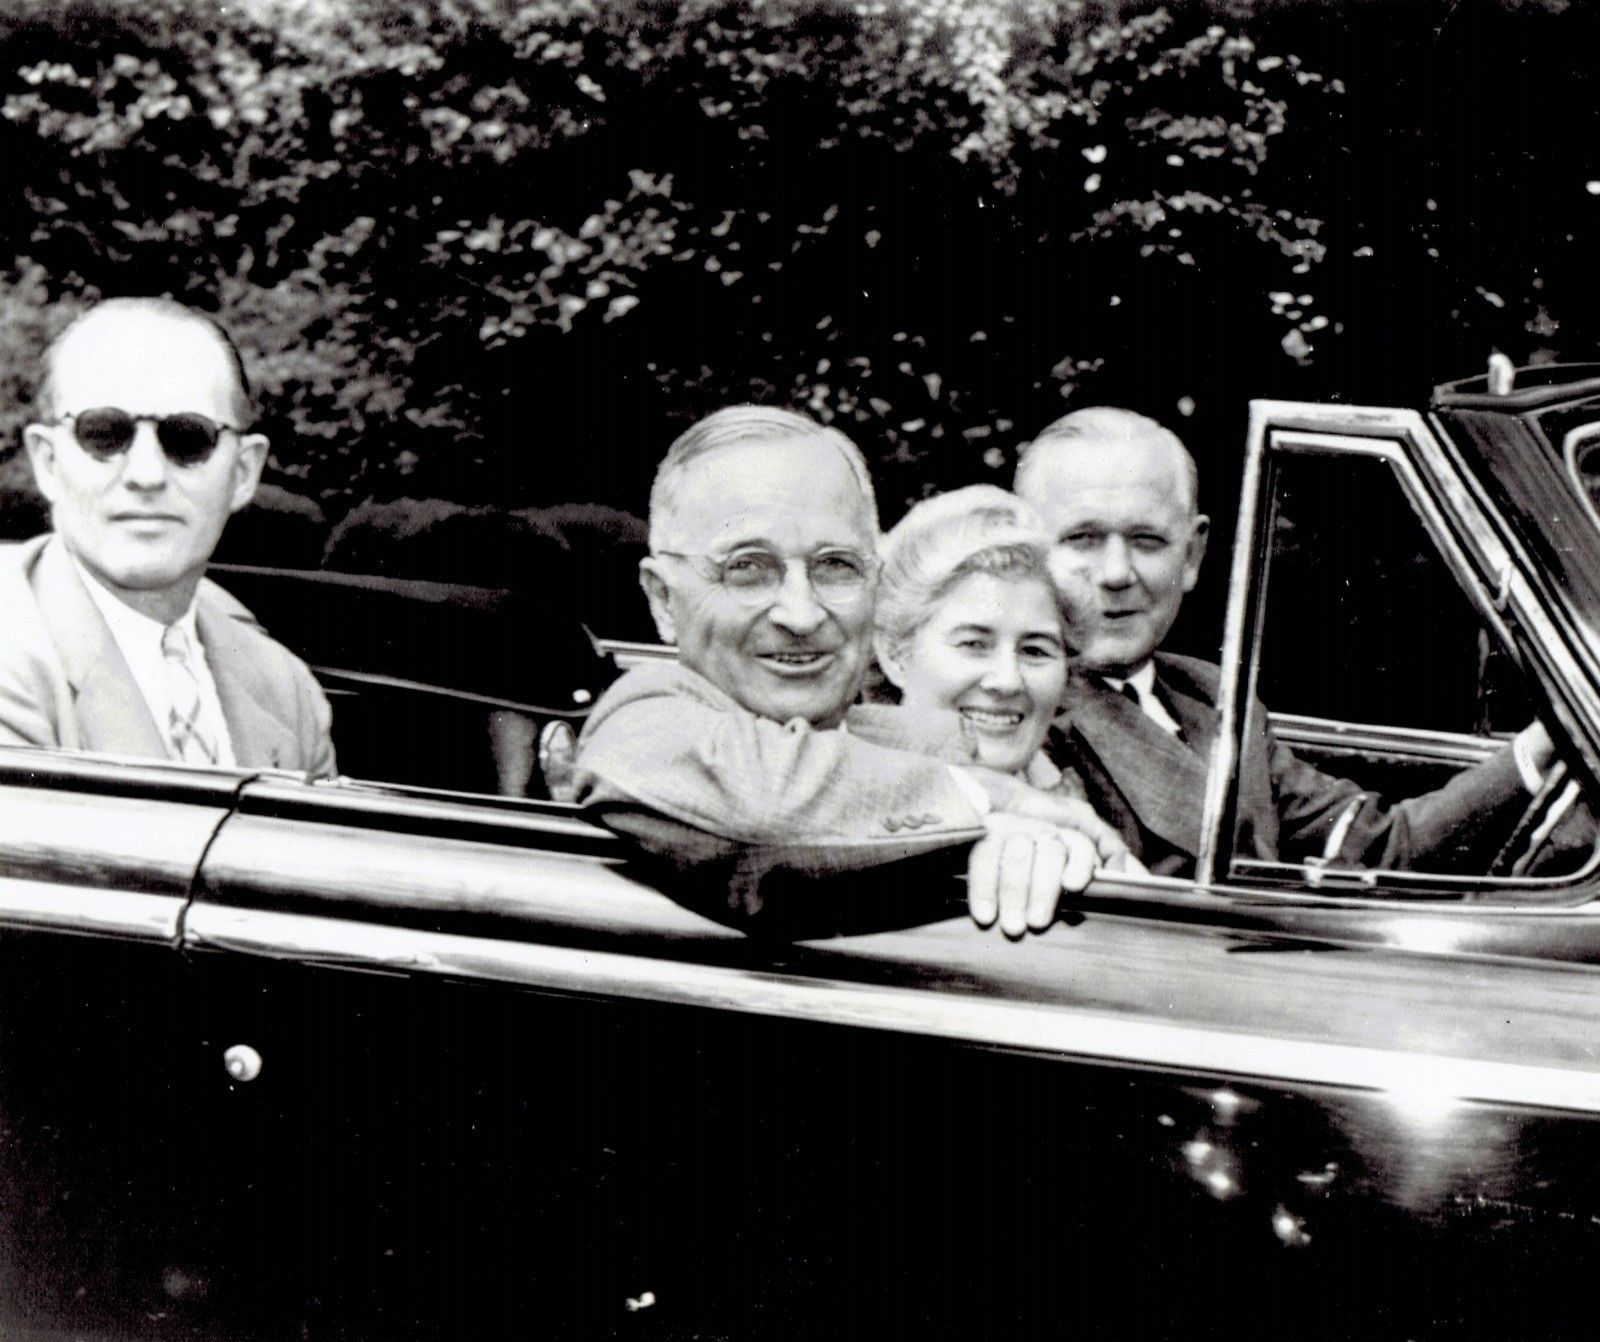 President Truman with Secret Service agent riding in back